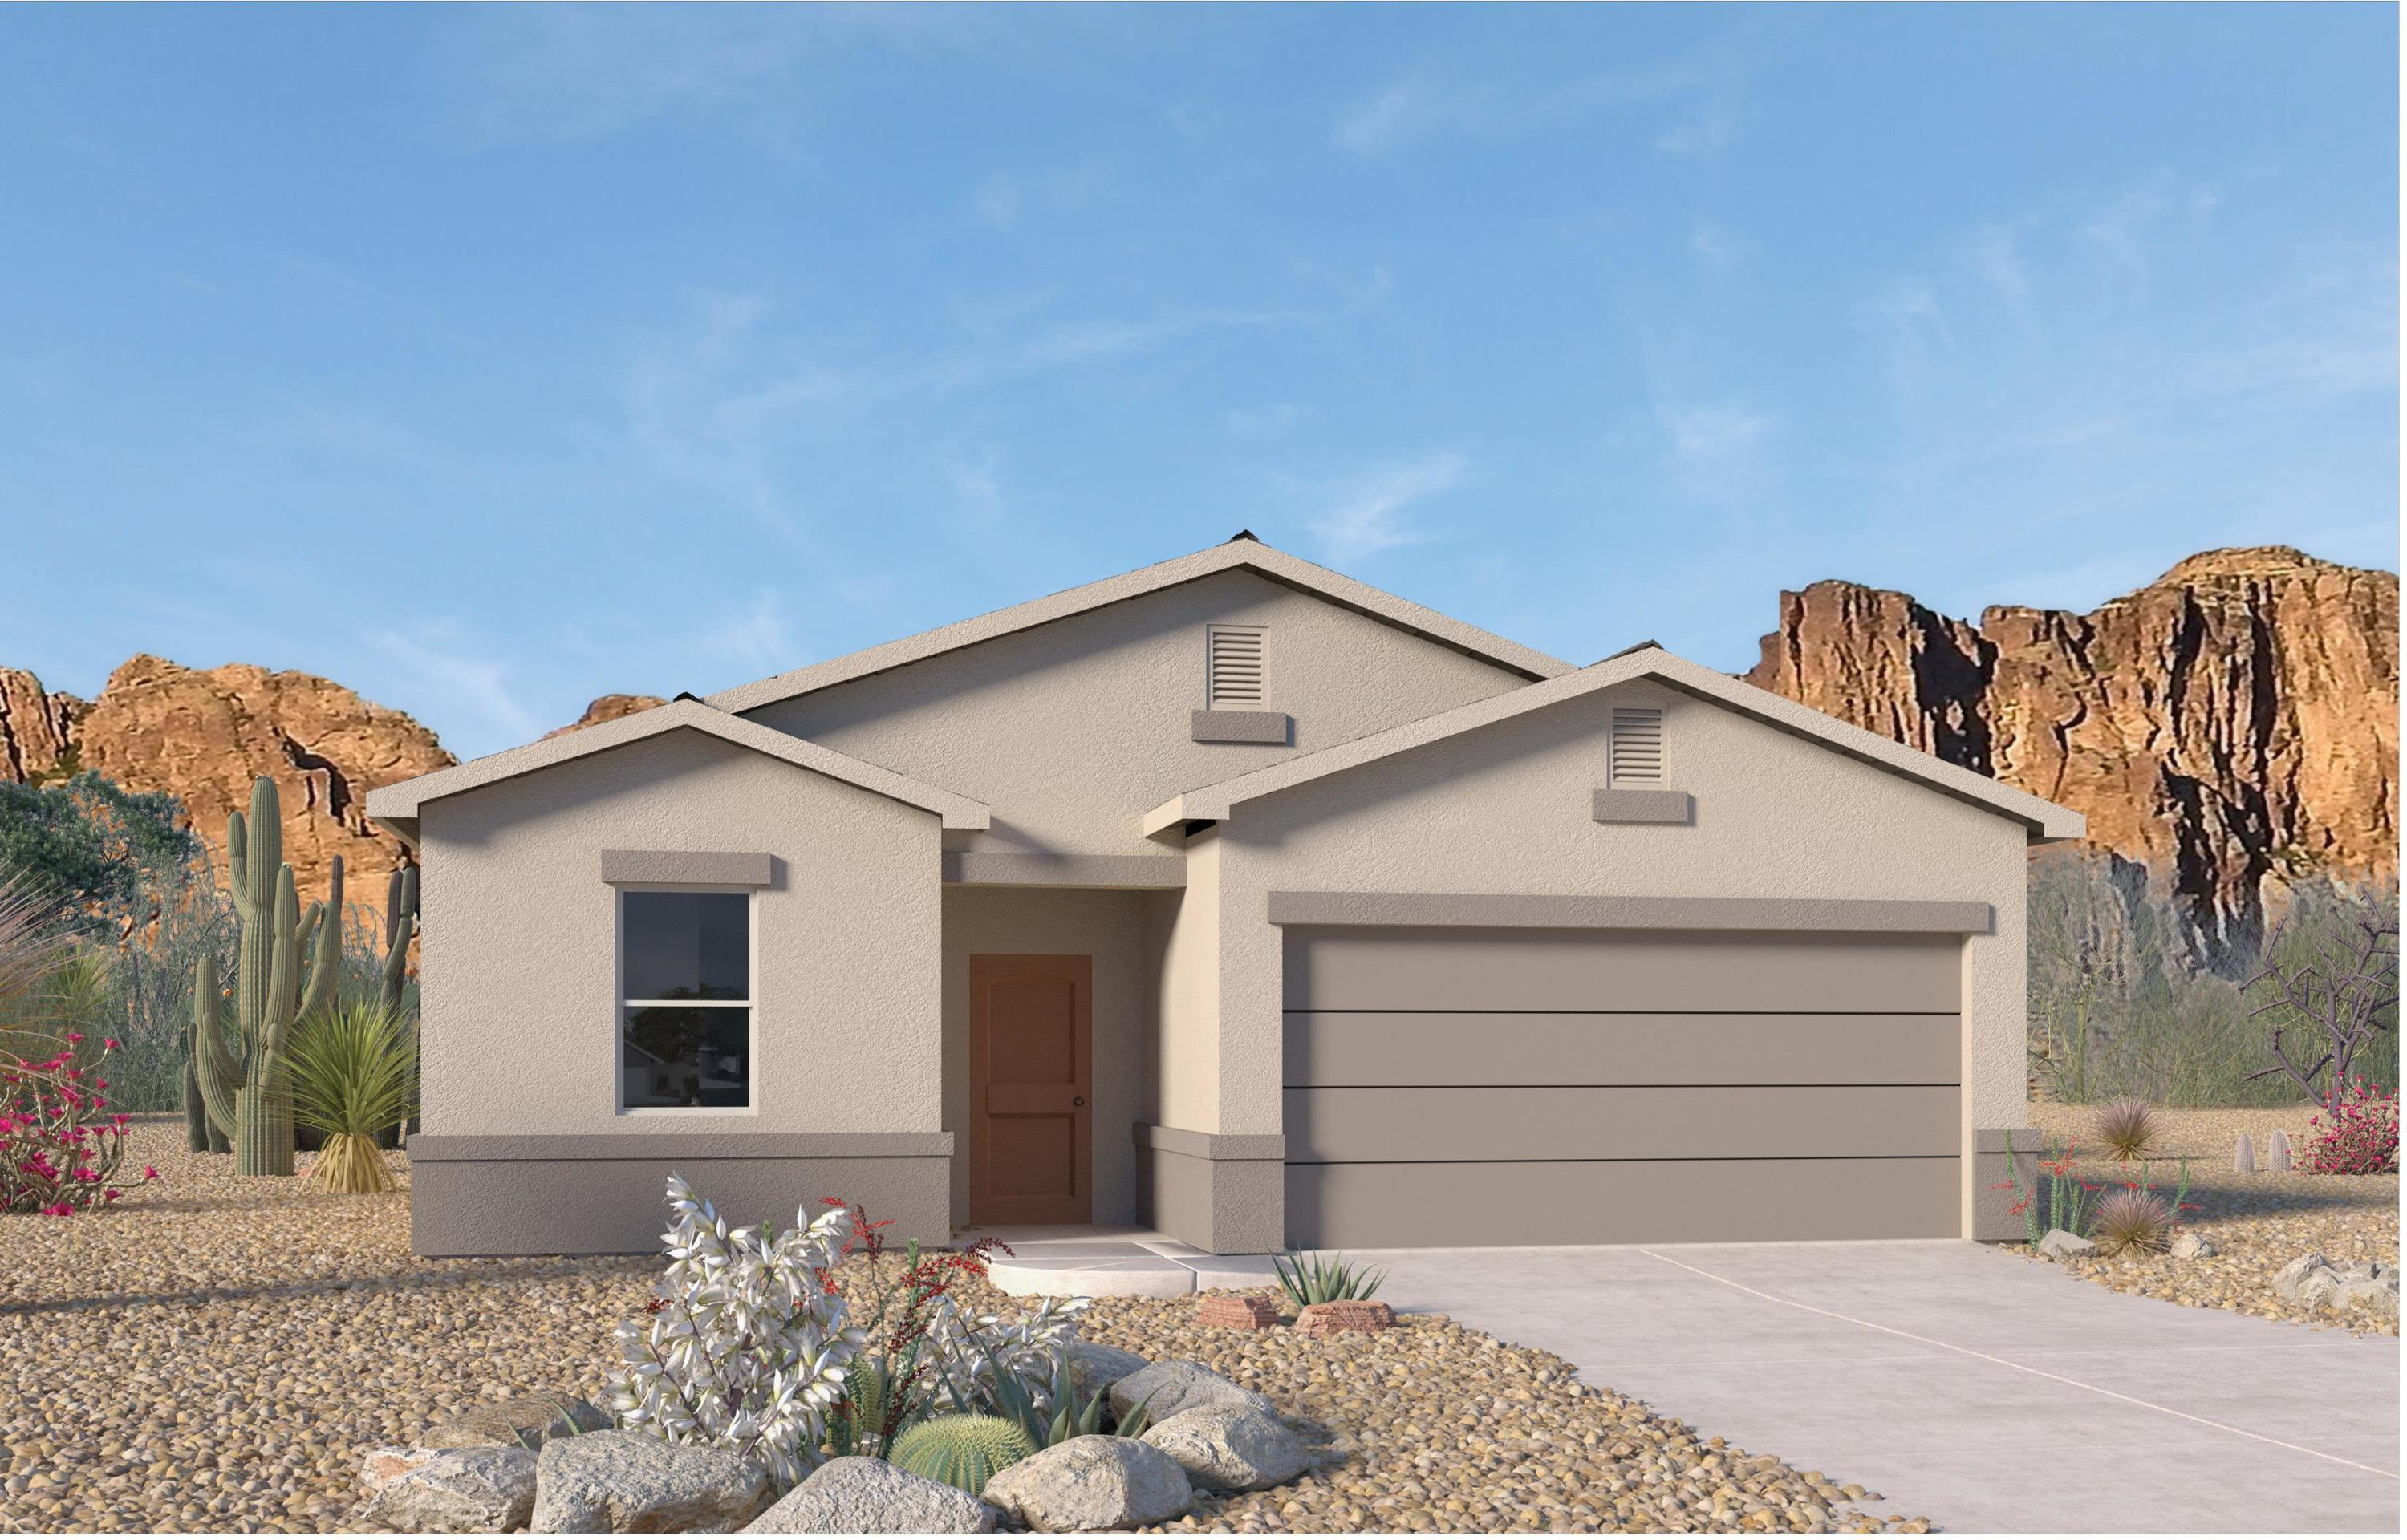 This Brand New  Jemez floorplan is in convenient Solcito Neighborhood. This ''SMART'' home has an open floor plan with plenty of natural light. The kitchen is the heart of this home with a large granite topped island & plenty of cabinet & pantry space.  18 x 18'' slate colored floor tiles. The great room has a door that overlooks the covered patio area,  2 Spacious bedrooms are located close to the full bathroom and utility room. The Owner's Suite on opposite side has raised ceilings, w/ two windows for extra light. Master bath is complete with an over-sized walk-in closet and extended shower. Energy efficient, this BRAND NEW home estimate completion in January ''upgrades included''  Ask about our ''move in Package  & $5,000 closing costs with DHI mort..  Photos are of prior Tesuque Model